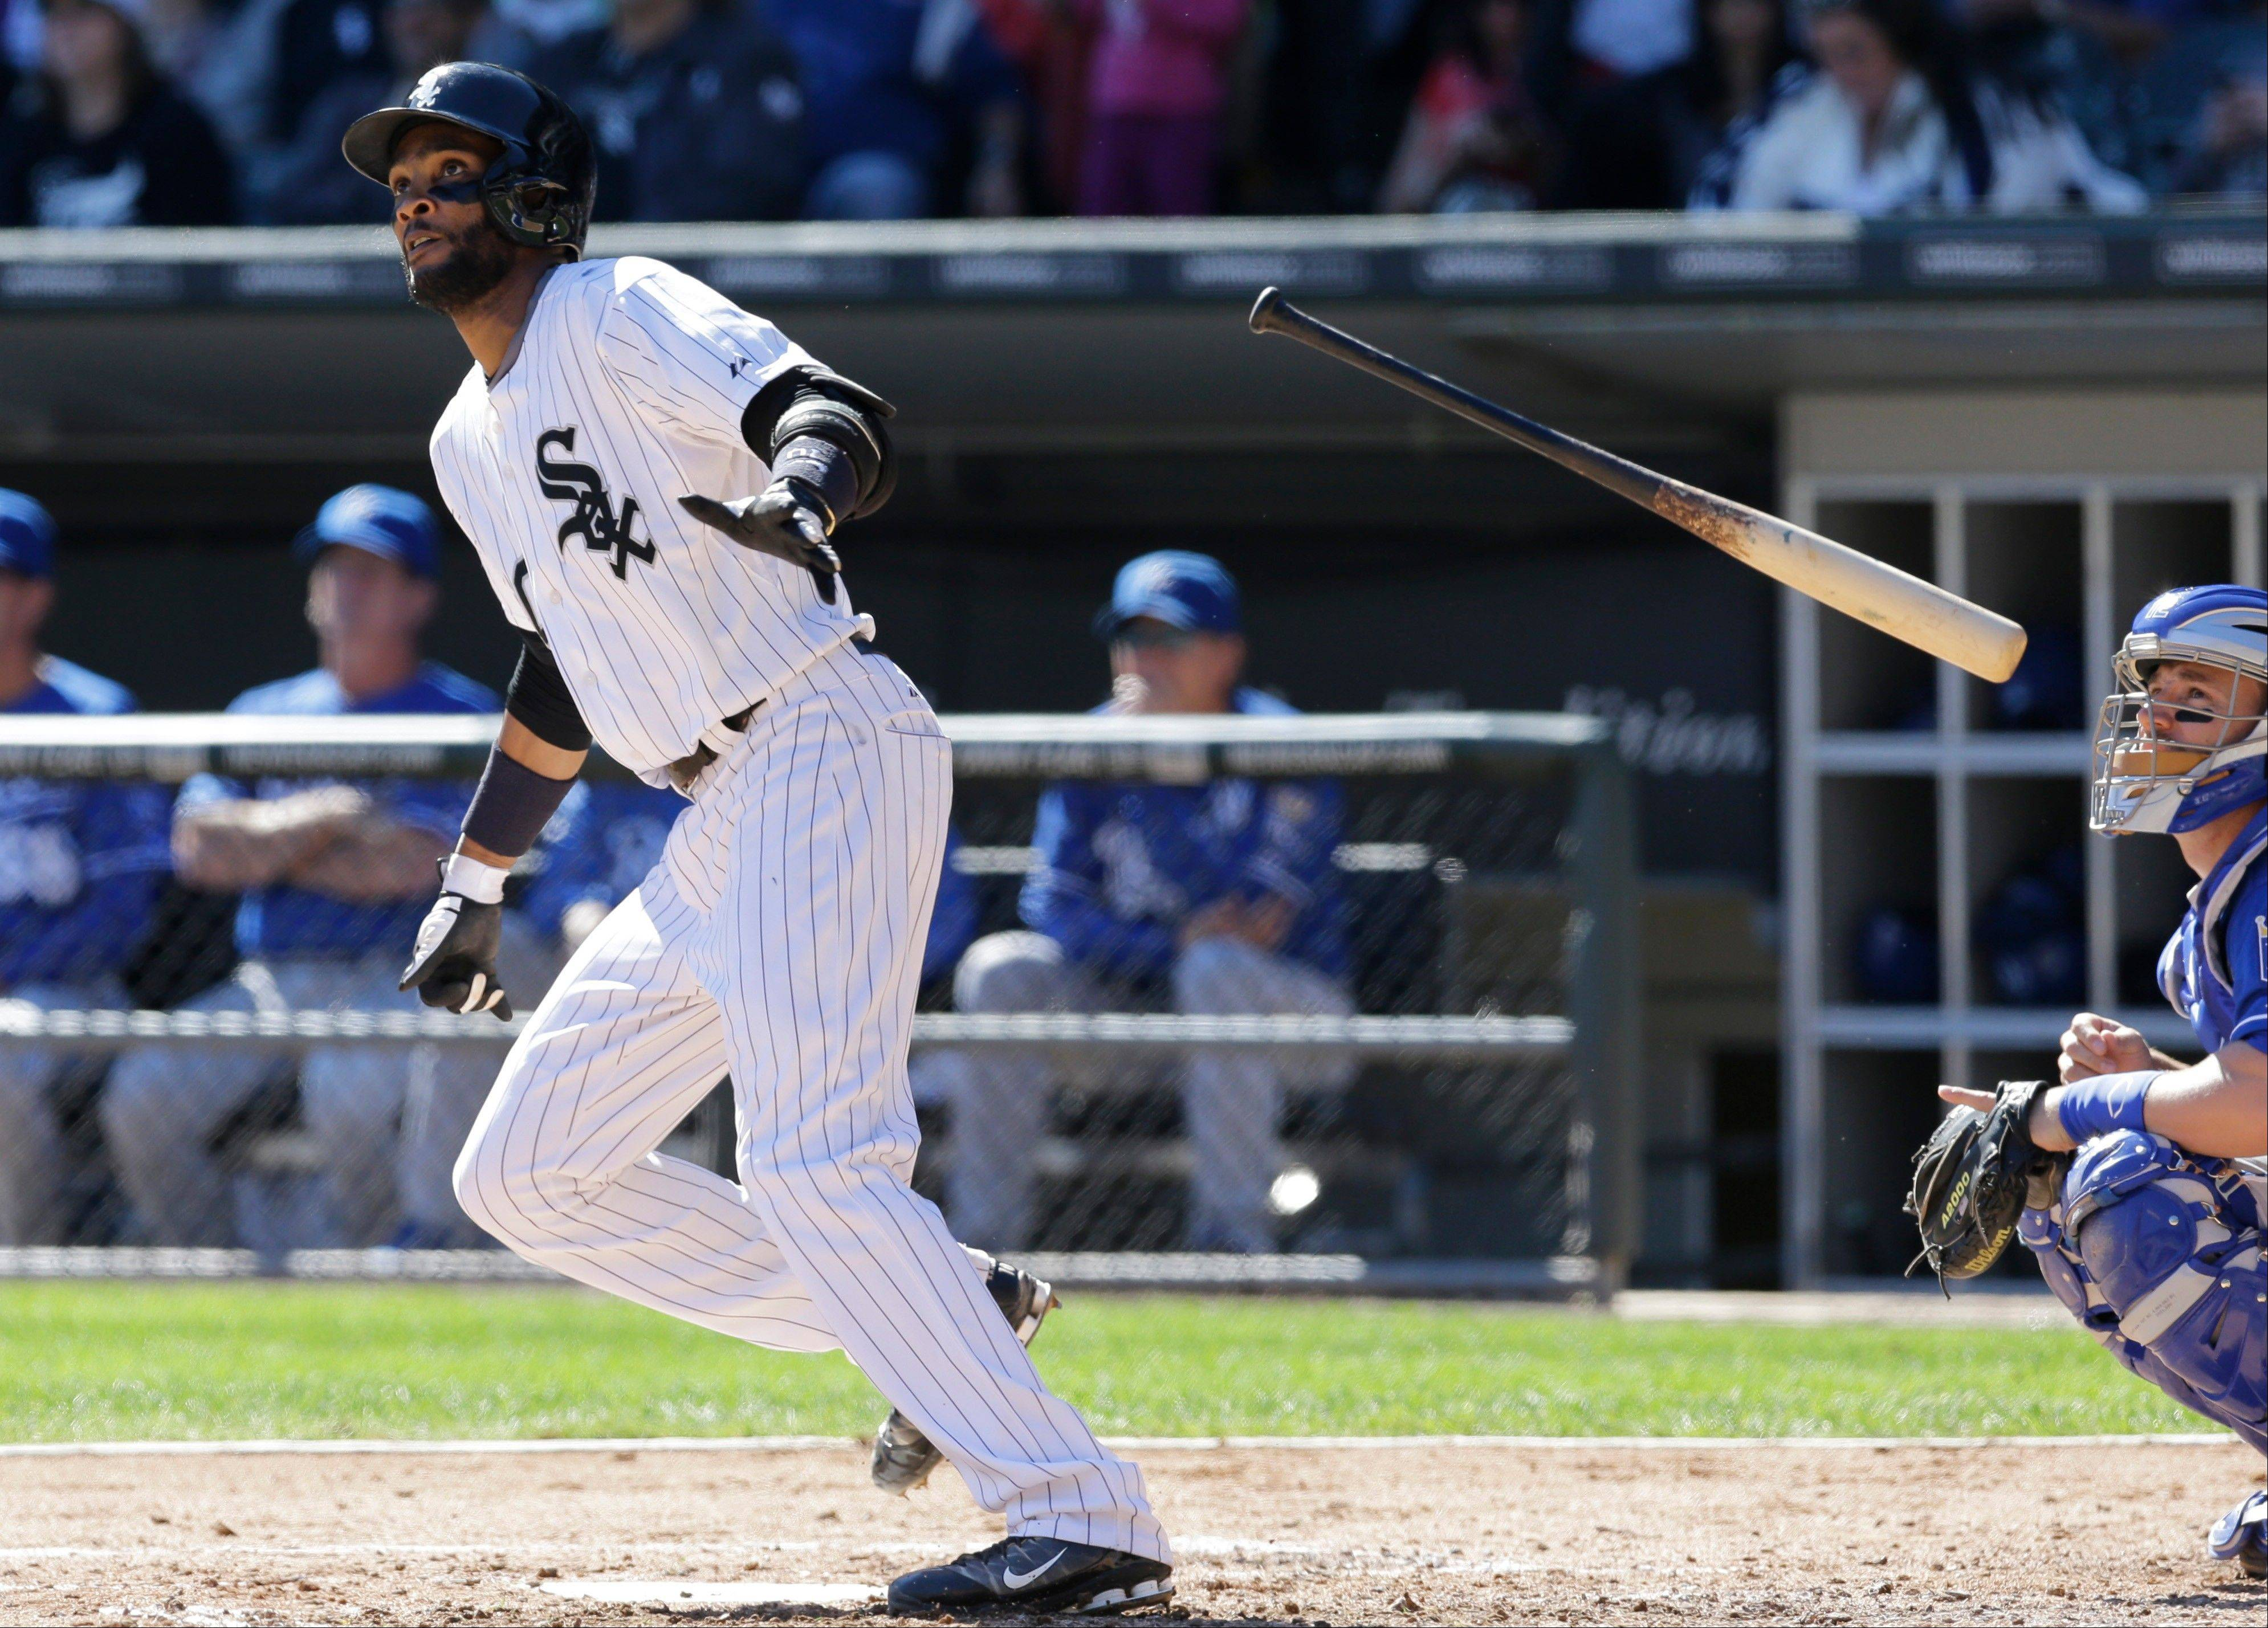 For White Sox shortstop Alexei Ramirez, it was a mixed bag this season. He committed a career-high 22 errors but led all American League shortstops with 181 hits.